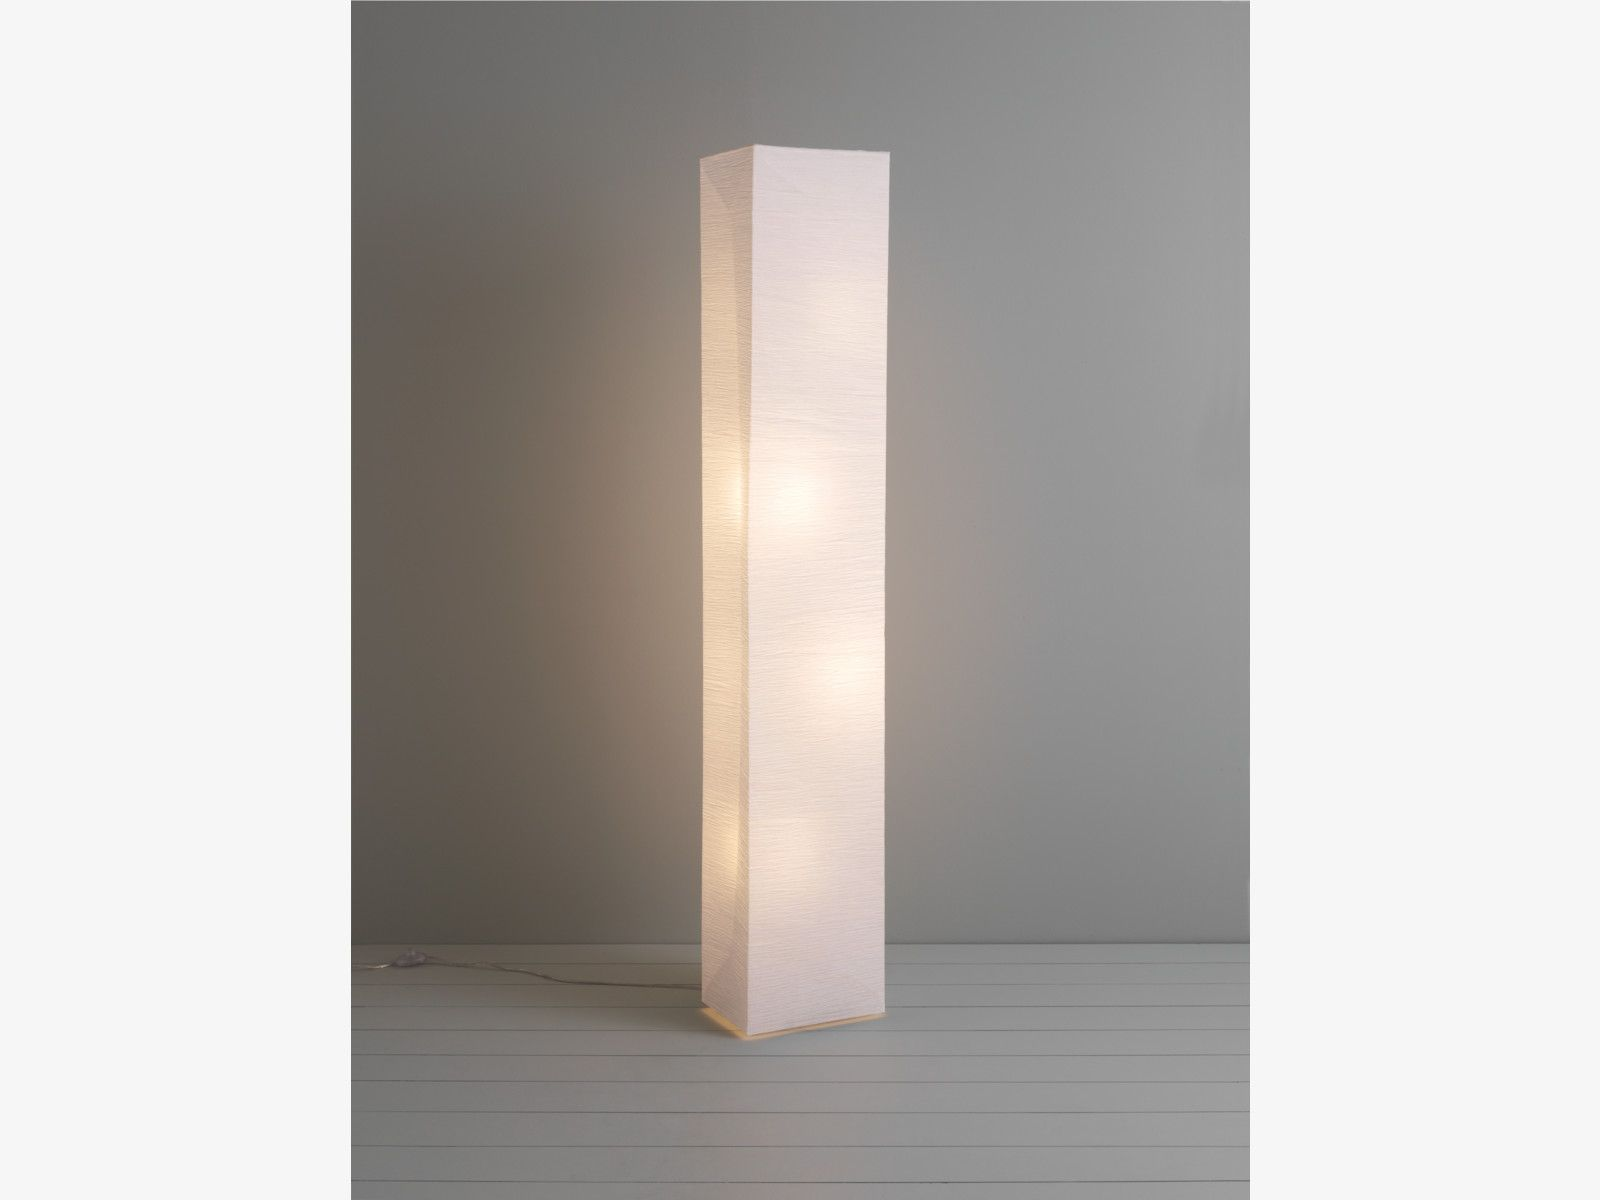 Nice no messy foot square paper white paper white crinkled a modern take on traditional japanese designs the hand finished square paper white floor lamp emits a soft glow through the crinkled organic paper aloadofball Images